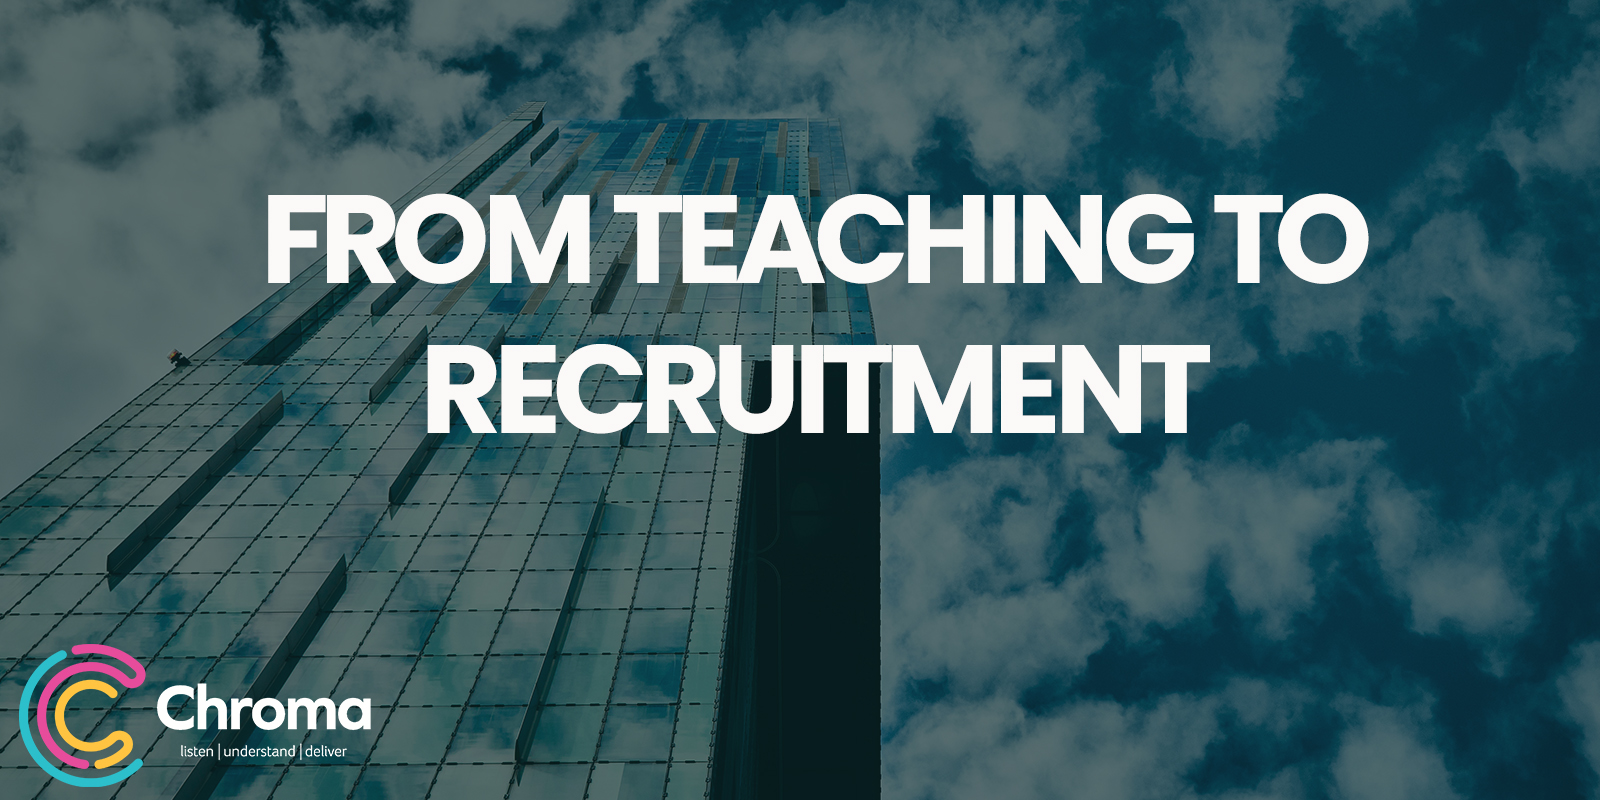 From Teaching to Recruitment